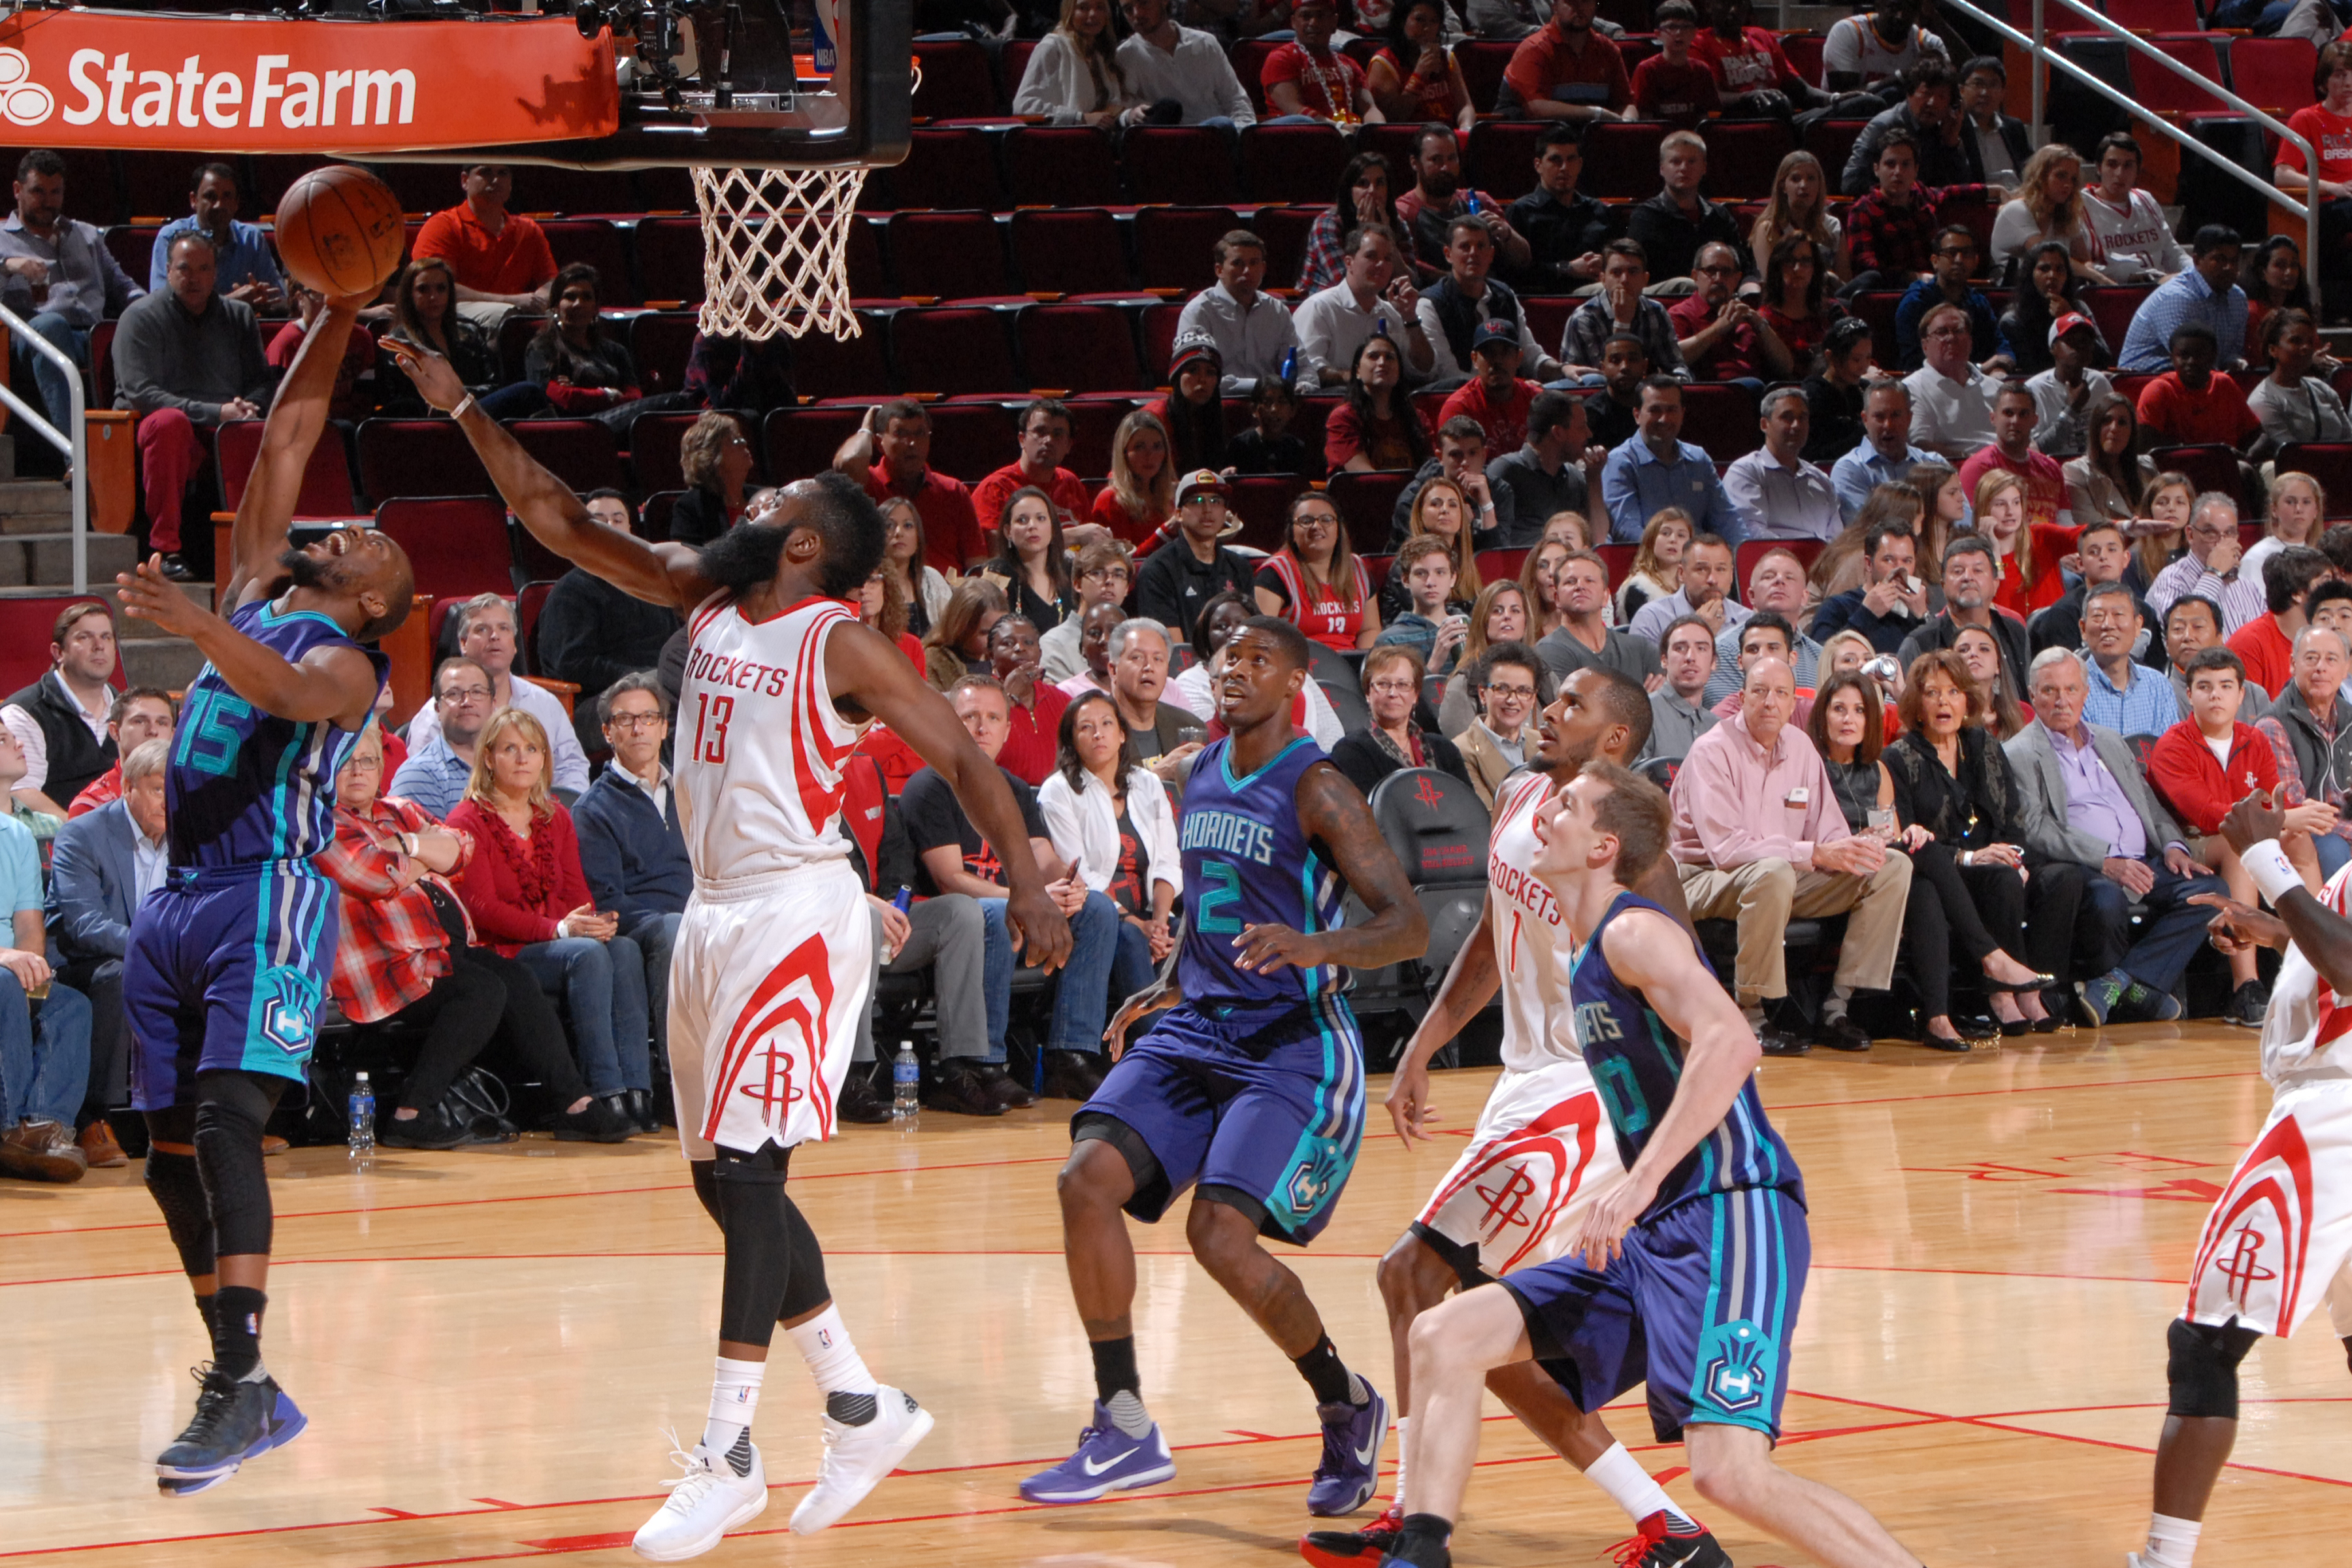 HOUSTON, TX - DECEMBER 21: Kemba Walker #15 of the Charlotte Hornets shoots the ball against the Houston Rockets on December 21, 2015 at the Toyota Center in Houston, Texas. (Photo by Bill Baptist/NBAE via Getty Images)